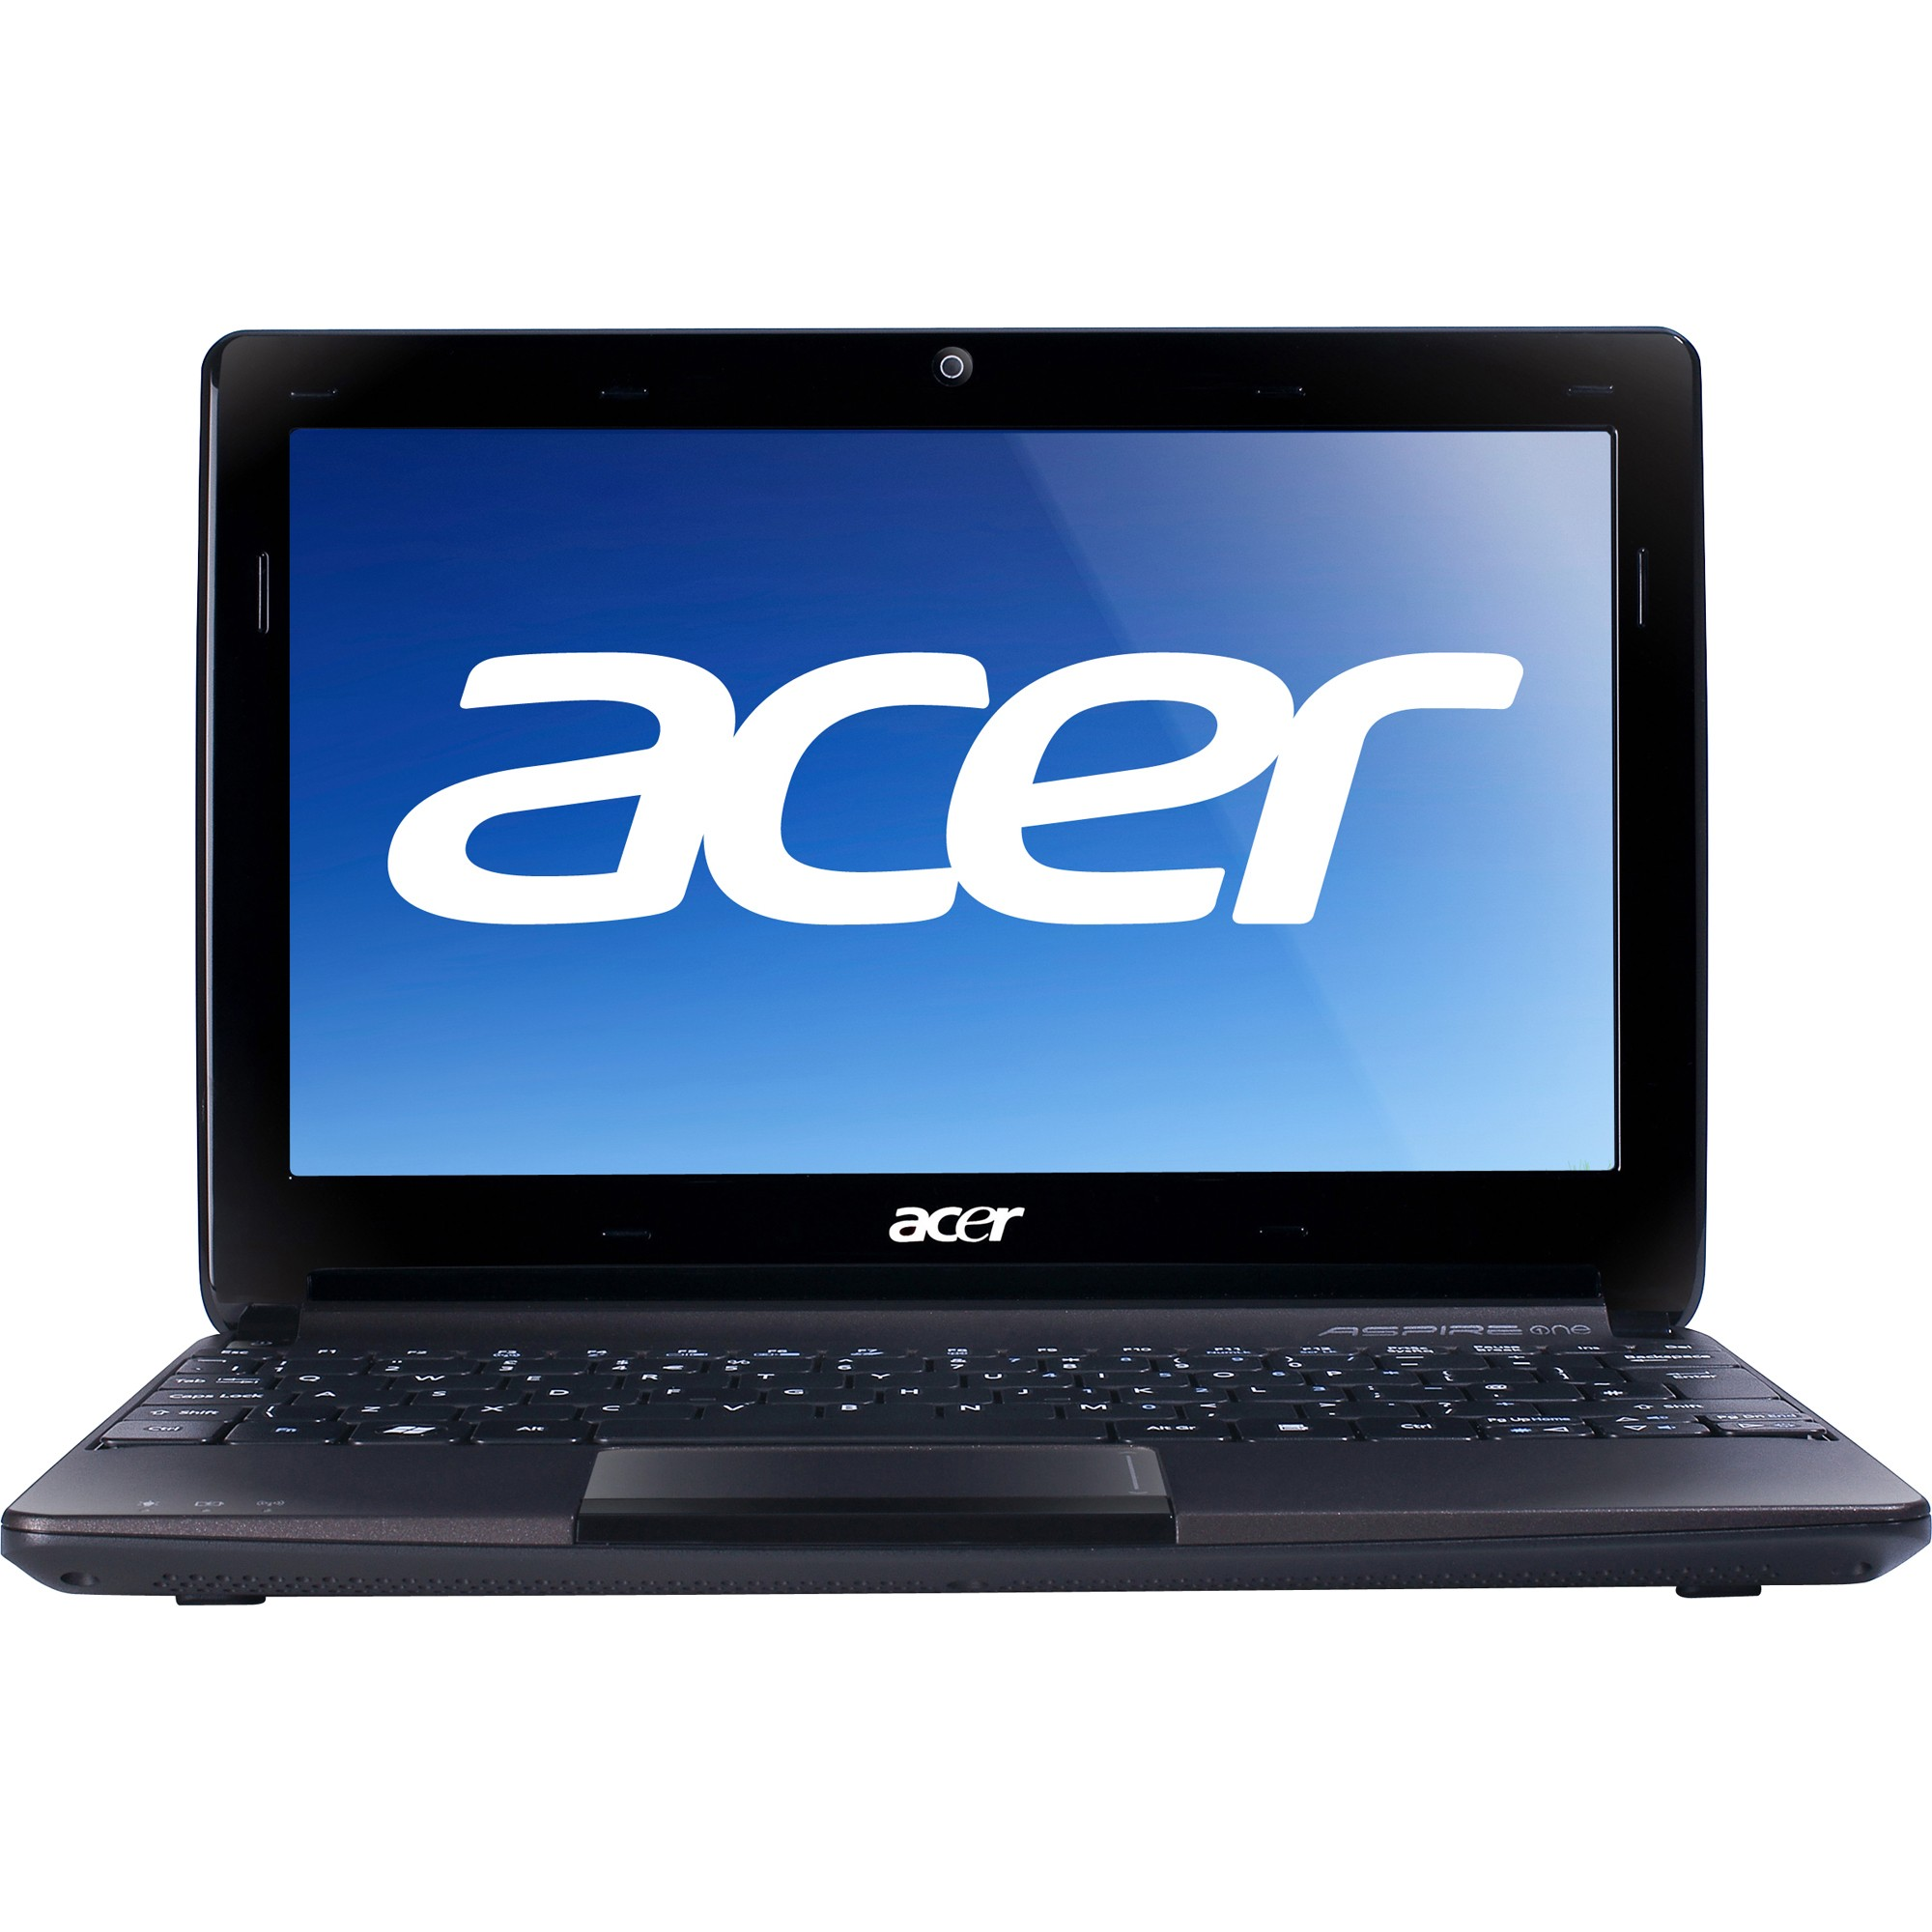 "Acer Espresso Black 11.6"" Aspire One AO722-0848 Laptop PC with AMD Dual-Core C-60 Accelerated Processor and Windows 7 Home Premium"